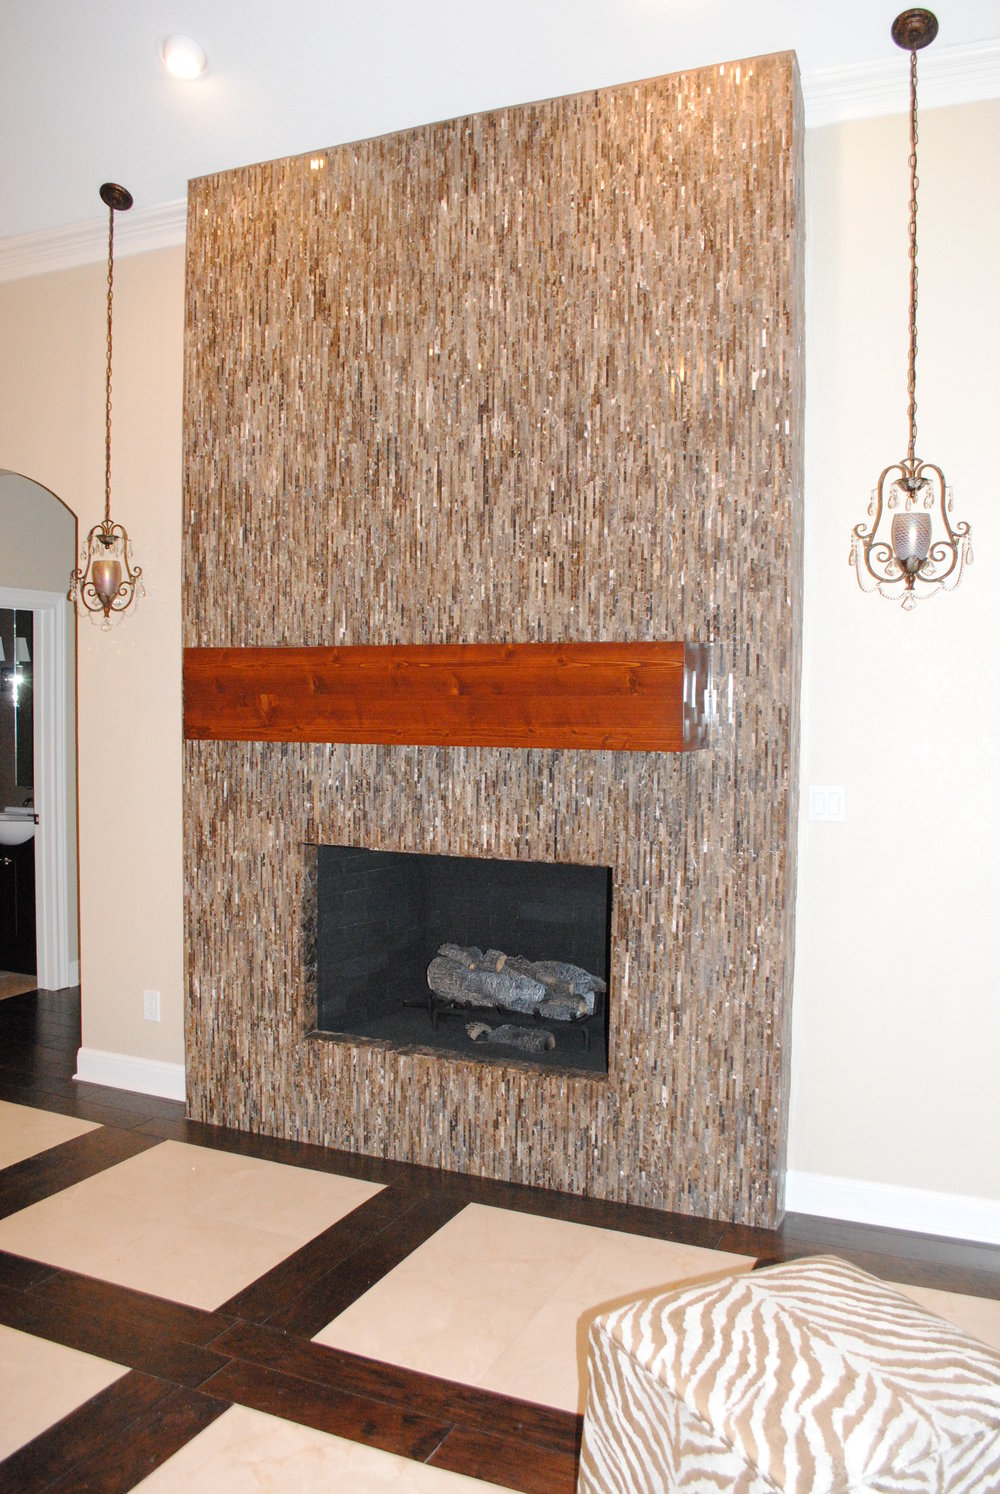 Floor to ceiling glass tile fireplace